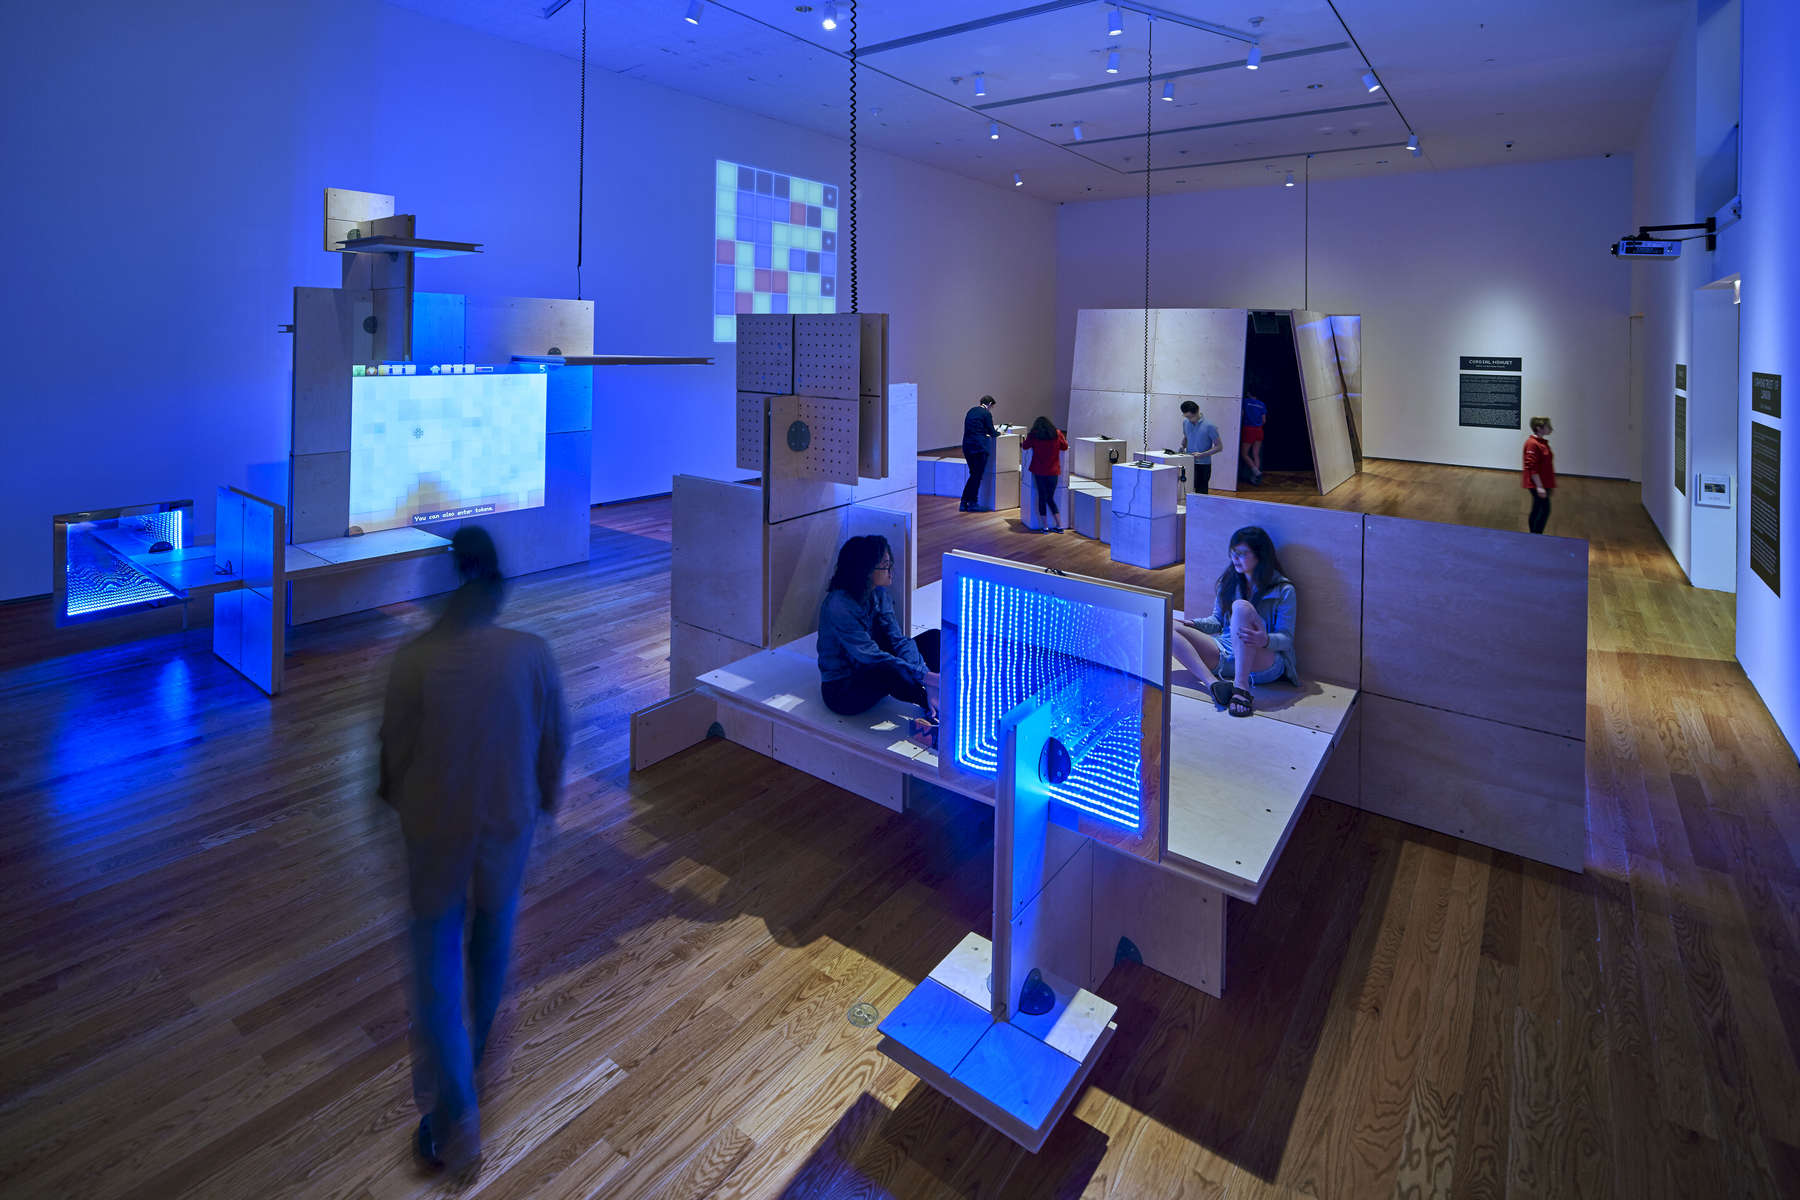 IKD was responsible for the installation and exhibition design of the first ever museum retrospective of a single video game designer. The exhibition, The Game Worlds of Jason Rohrer at the Davis Museum at Wellesley College, is a survey of the independent game designer Jason Rohrer work which has formed part of the Museum of Modern Art's initial video game acquisition.The central theme examines where video games are positioned within our daily culture and questions whether or not video games are art. The space is designed around four large installations that both create immersive environments to enhance game-play and form an interpretation of the games themselves. It also challenges the traditional notion that exhibition design should sit quietly behind the exhibited work. While the design is centered on creating a focus on exhibited works The Games Worlds of Jason Rohrer explores new possibilities in exhibition design through the immersive installation environments. image by Ben Kou